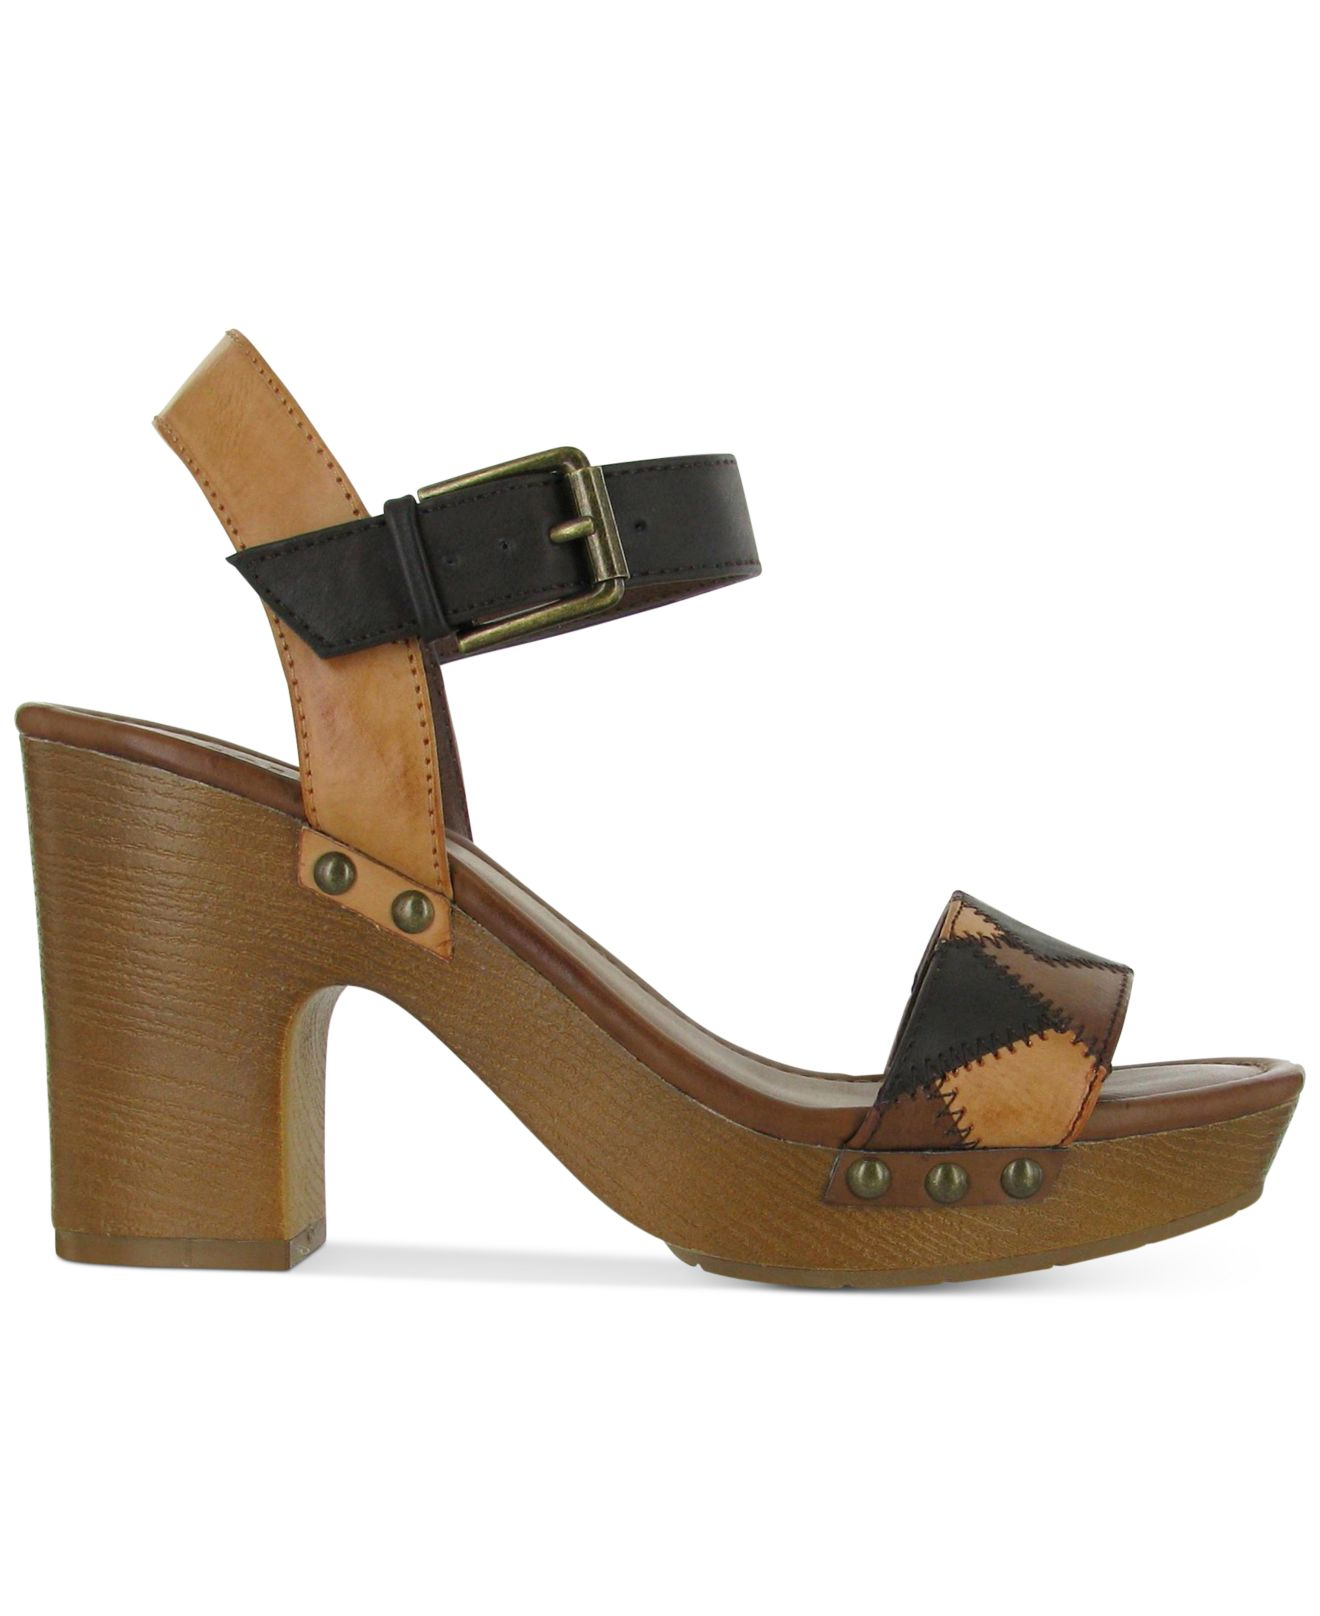 Lyst Mia Mateo Two Piece Wooden Platform Sandals In Black